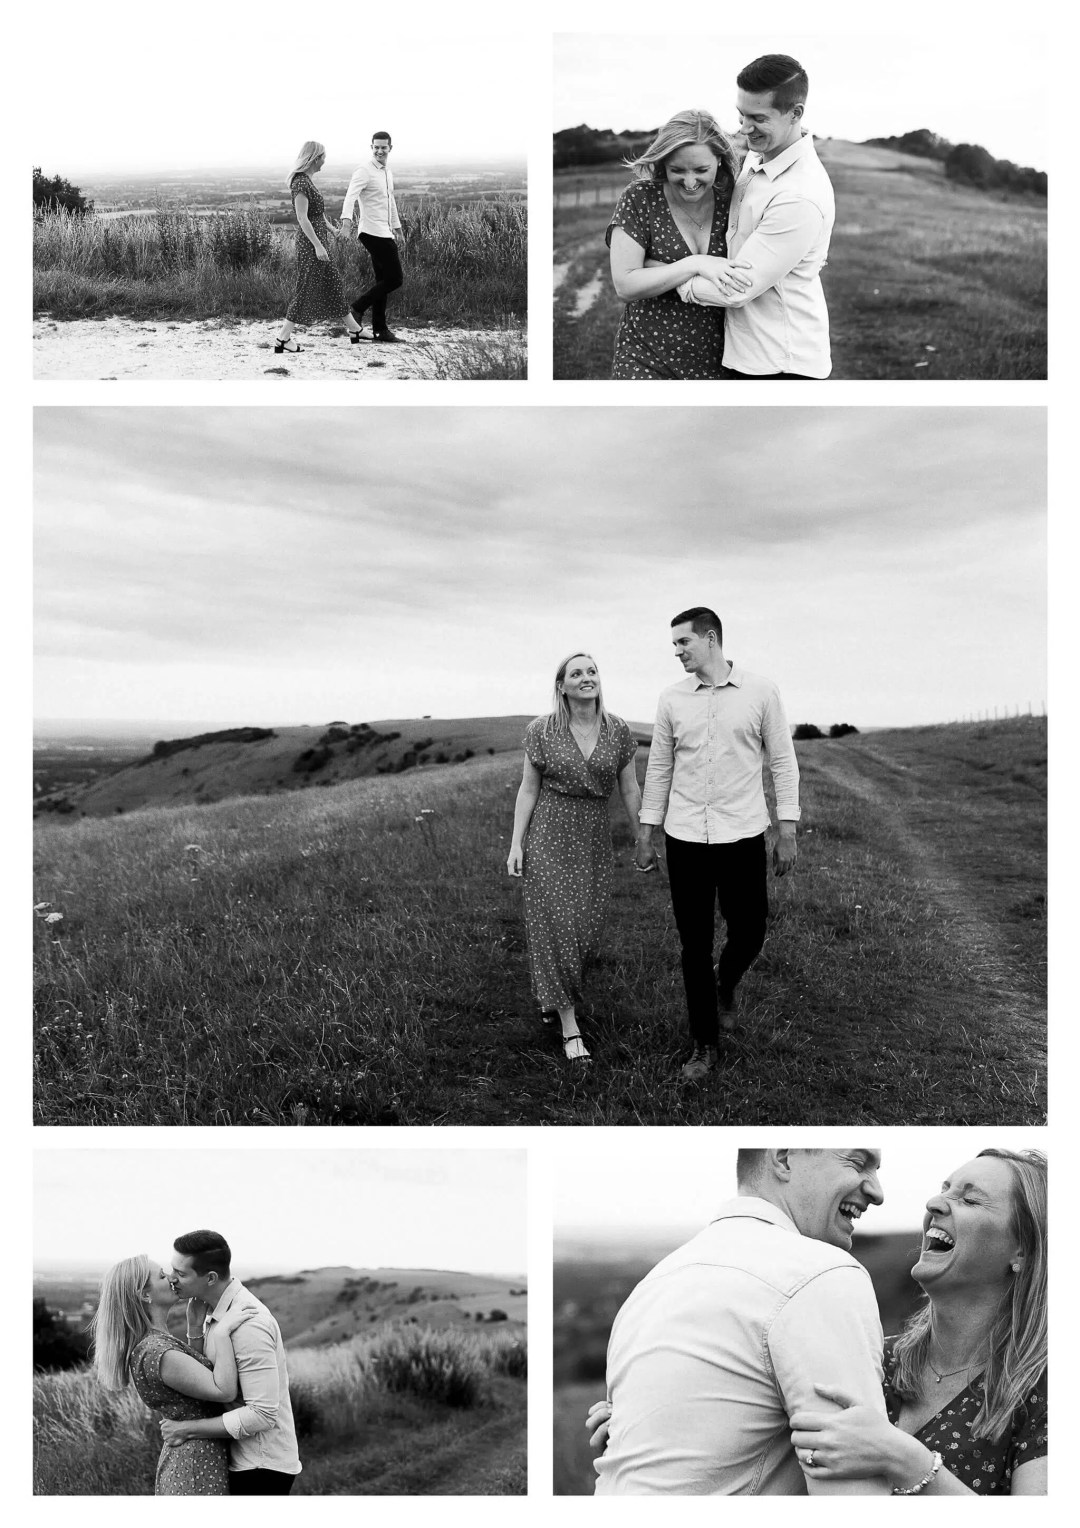 Ditchling Beacon Engagement Photography on South Downs near city of Brighton